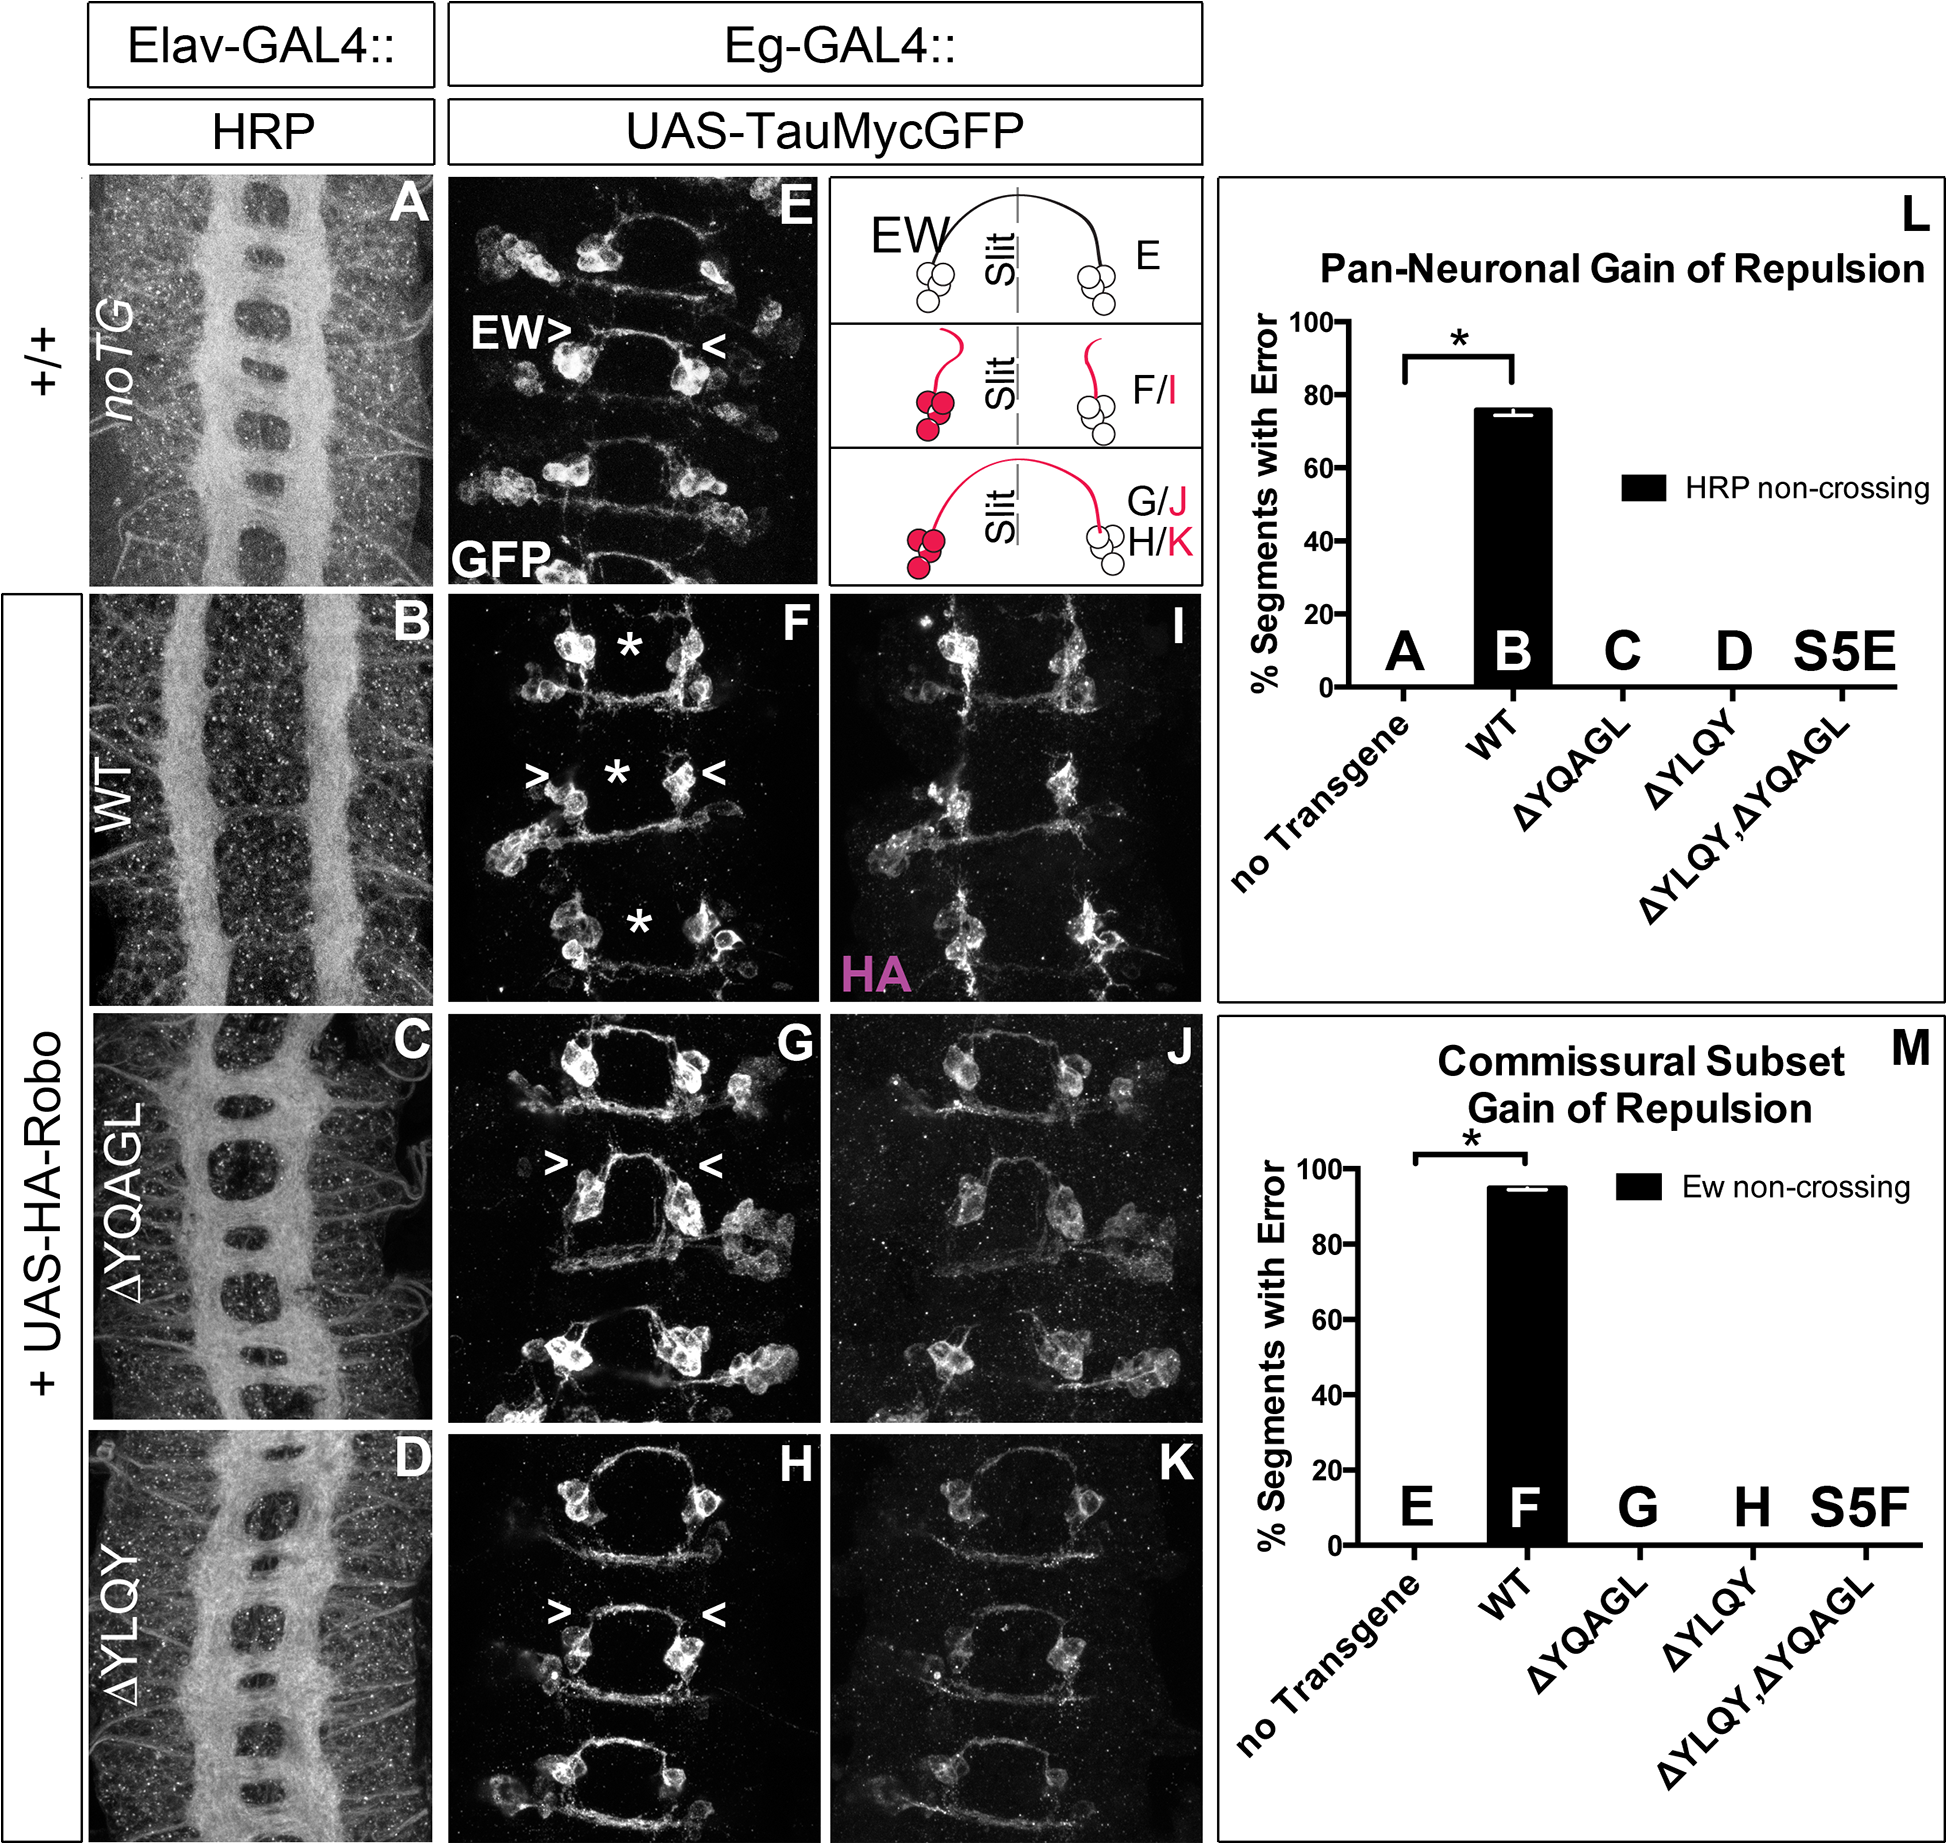 Endocytosis motifs are required for ectopic repulsion <i>in vivo</i>.